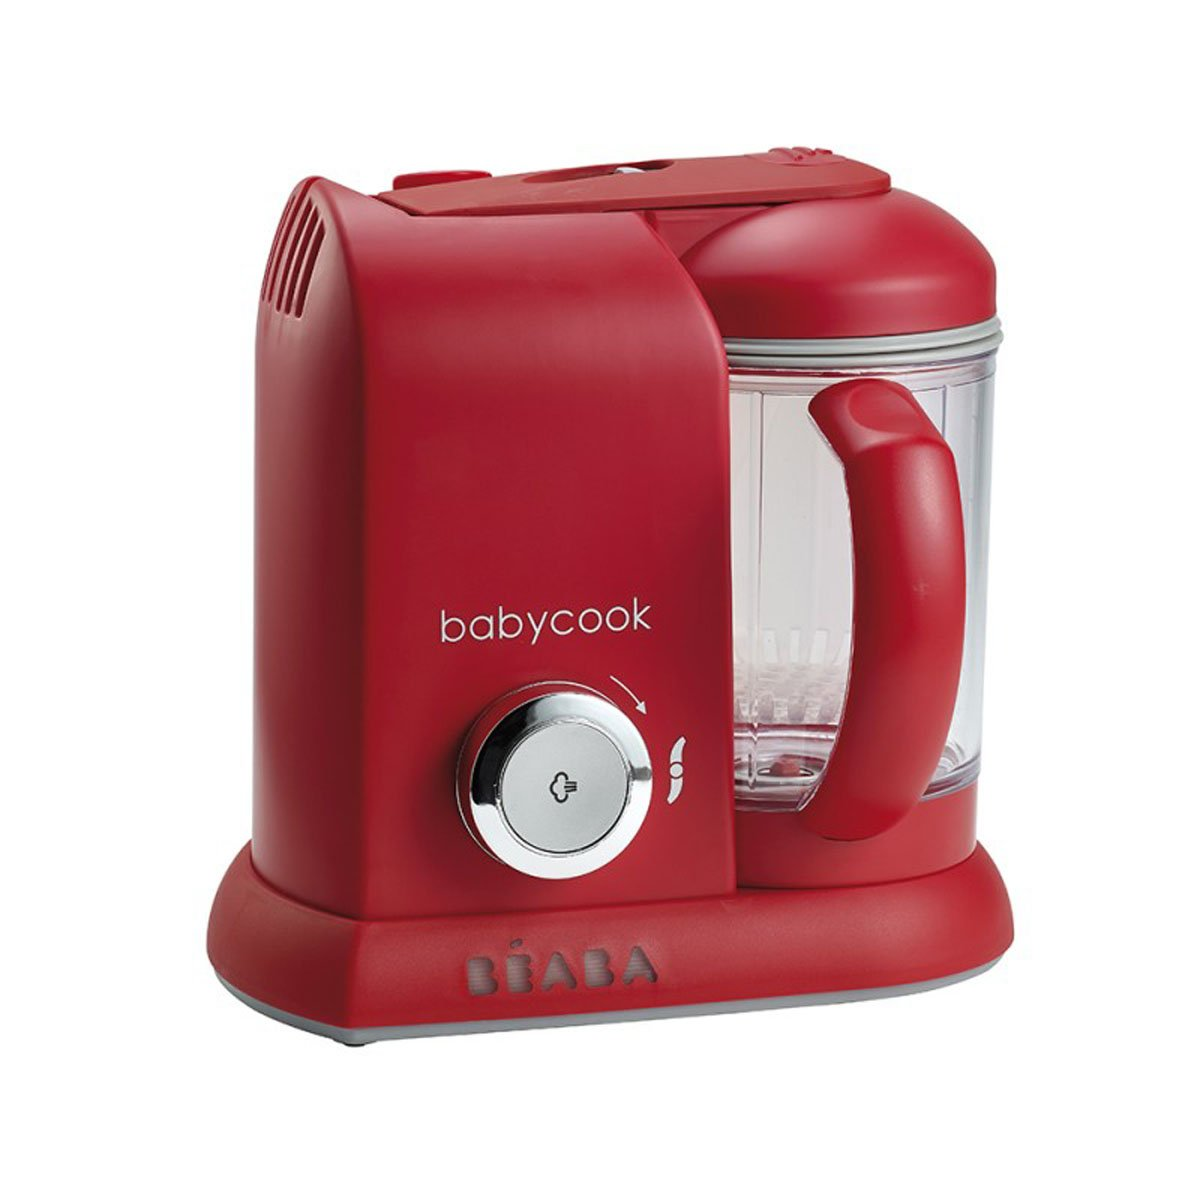 Babycook 4-in-1 Steamer and Food Processor Red - Beaba